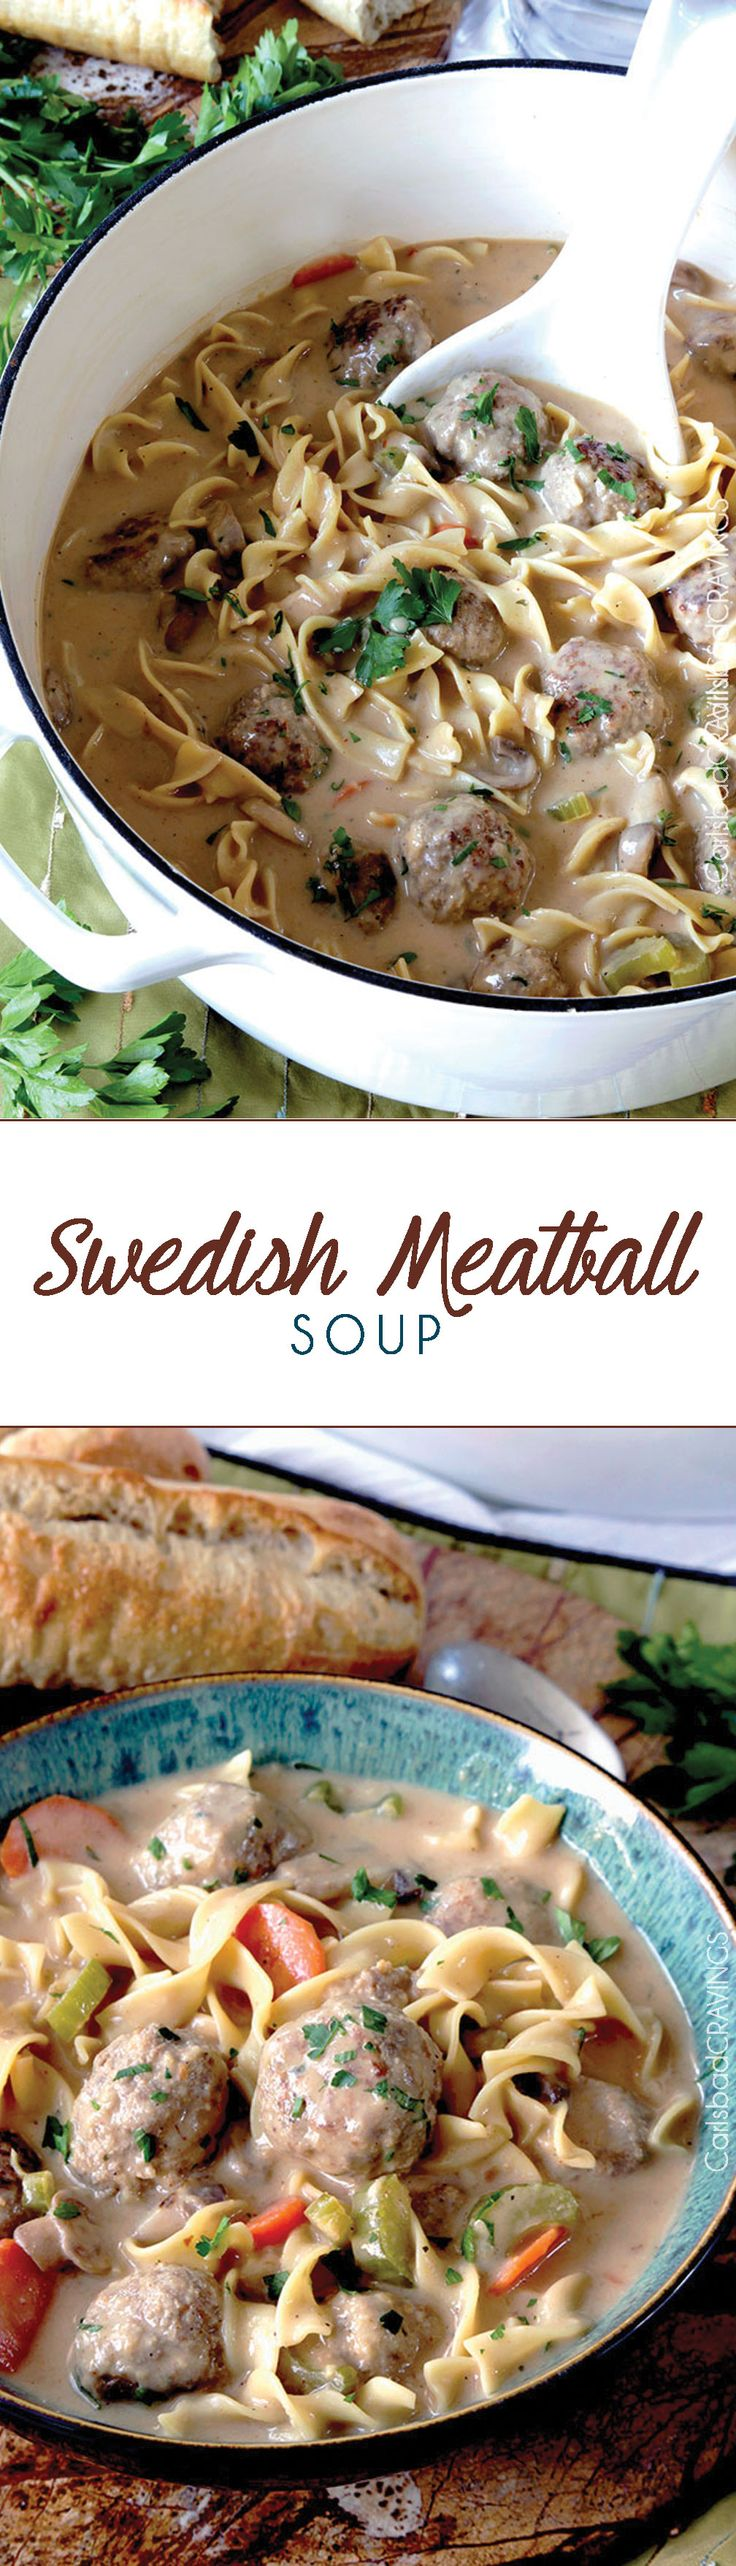 Swedish Meatball Soup -- tender, moist meatballs, hearty noodles, carrots, mushrooms and celery all swimming in luscious creamy brown gravy broth swirled with sour cream. http://www.carlsbadcravings.com/swedish-meatball-noodle-soup/